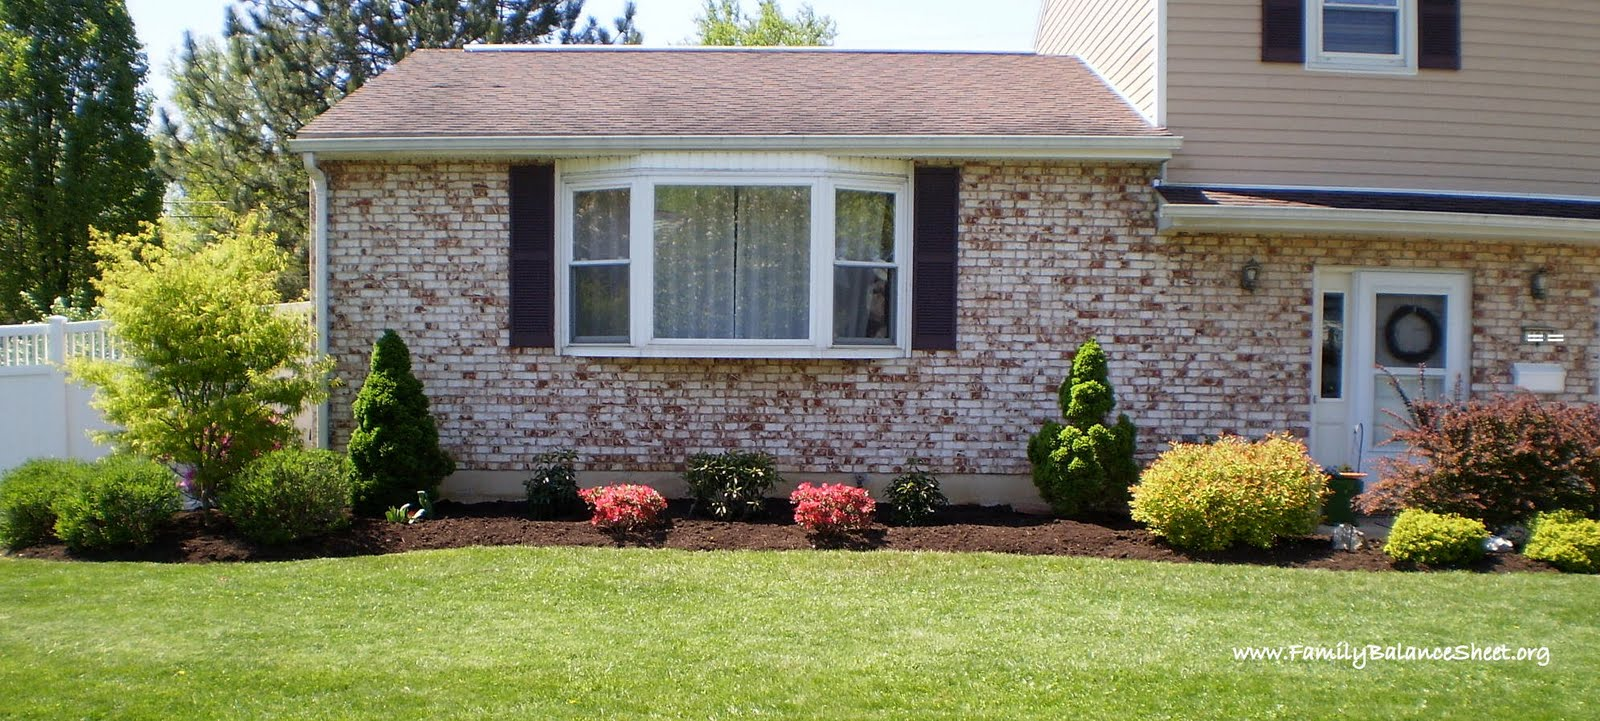 15 tips to help you design your front yard save money too for Front yard landscape design